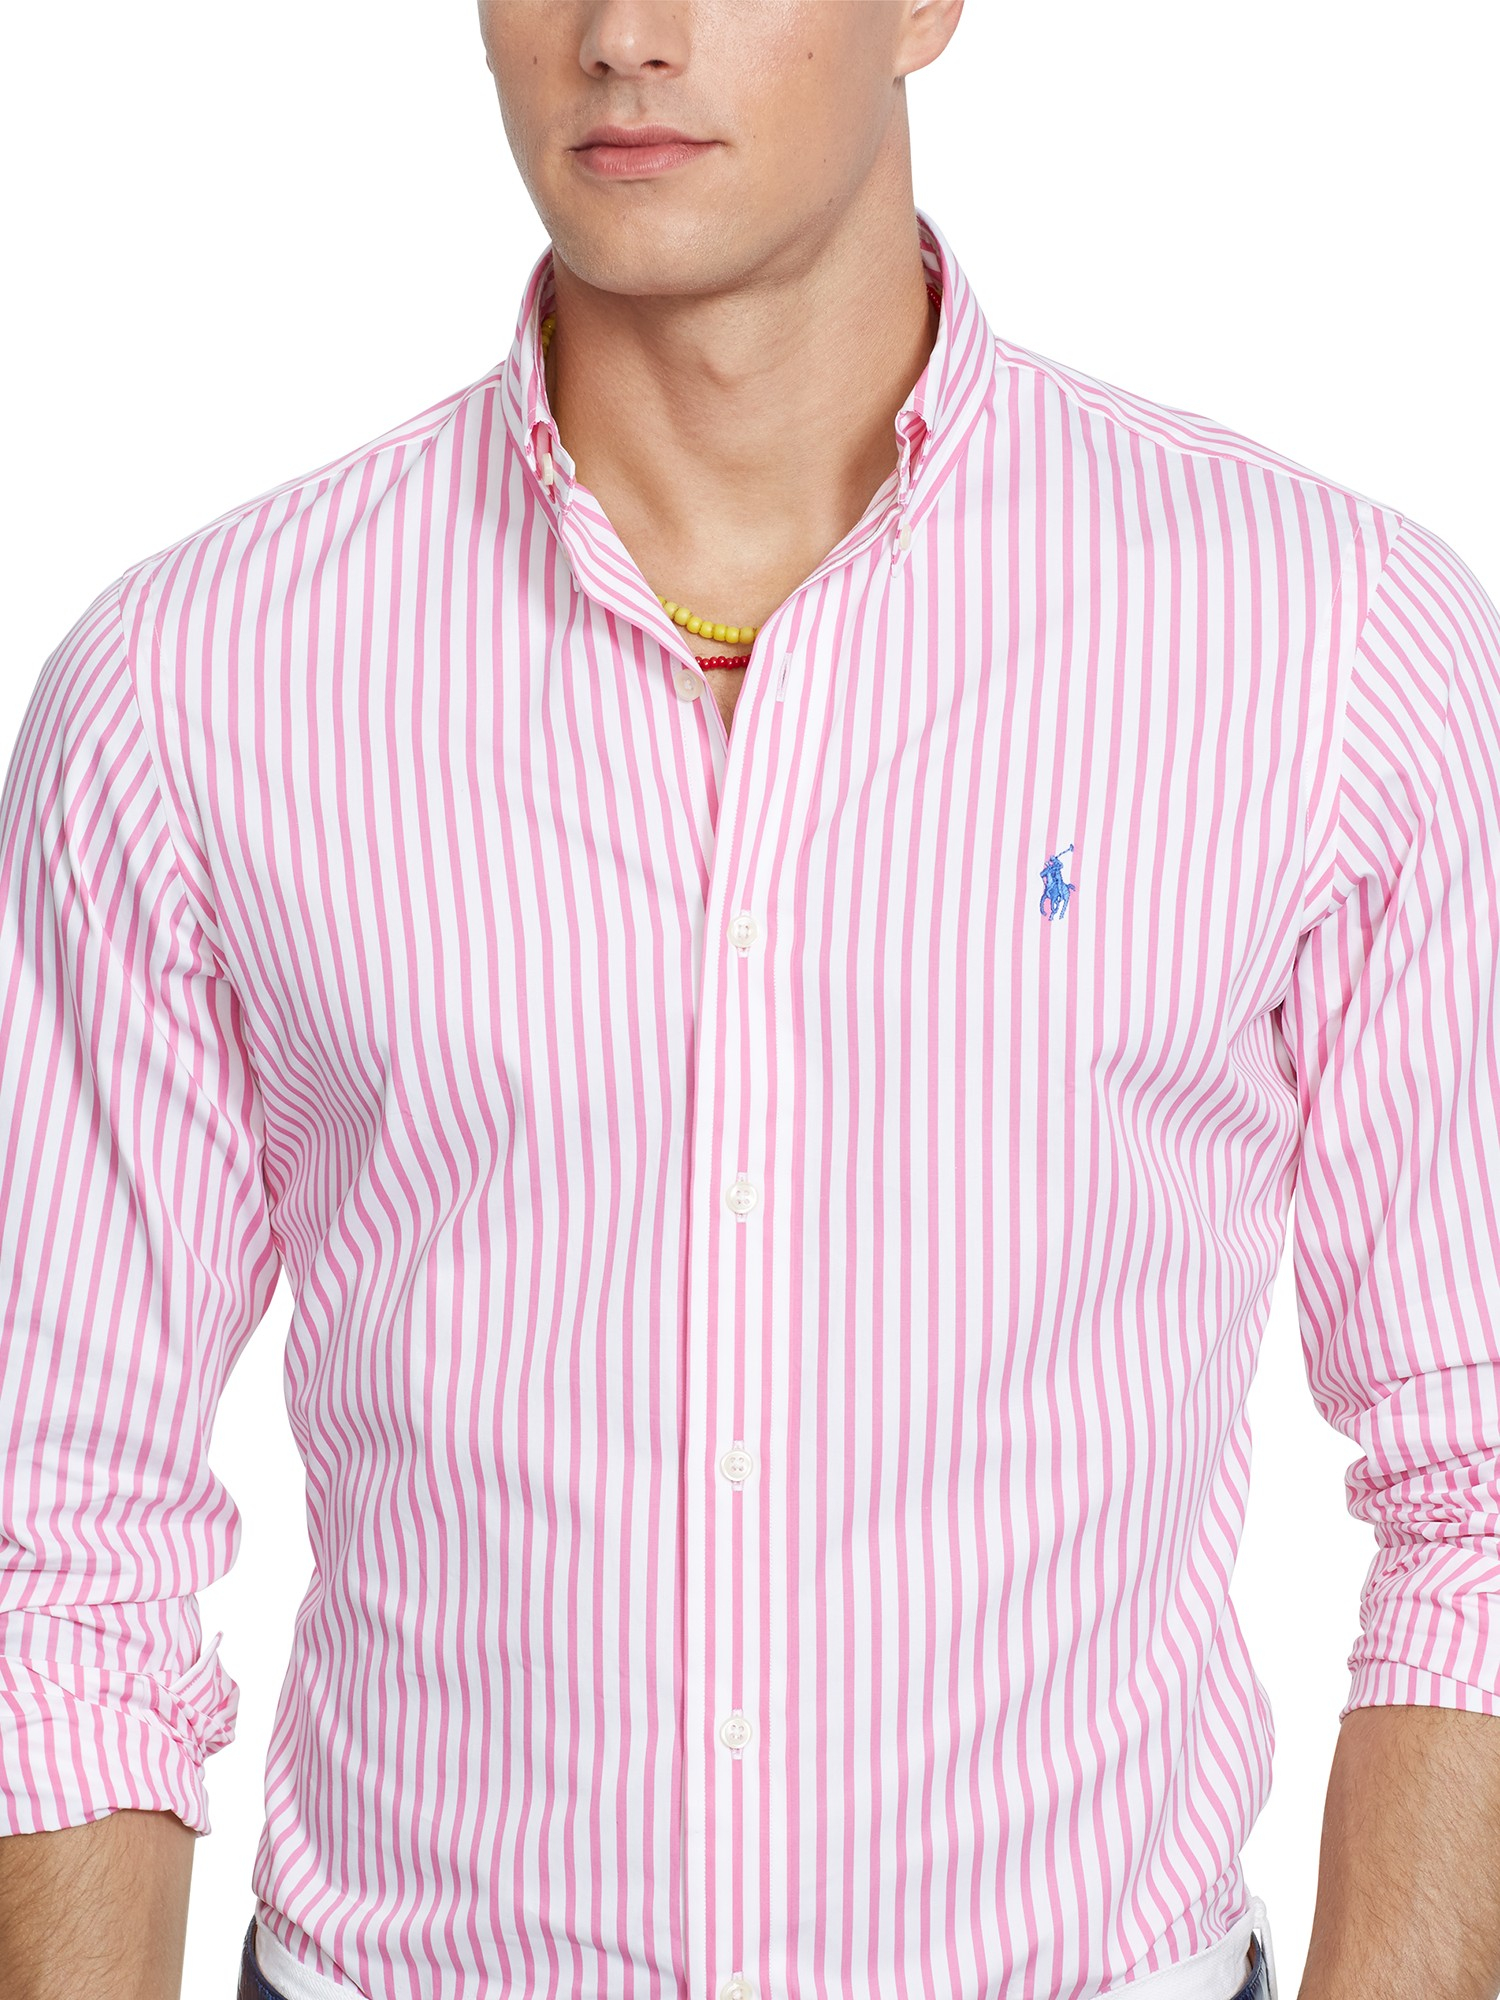 9cae8984a7 ... where to buy polo ralph lauren bengal stripe poplin shirt in pink for  men lyst 2dc15